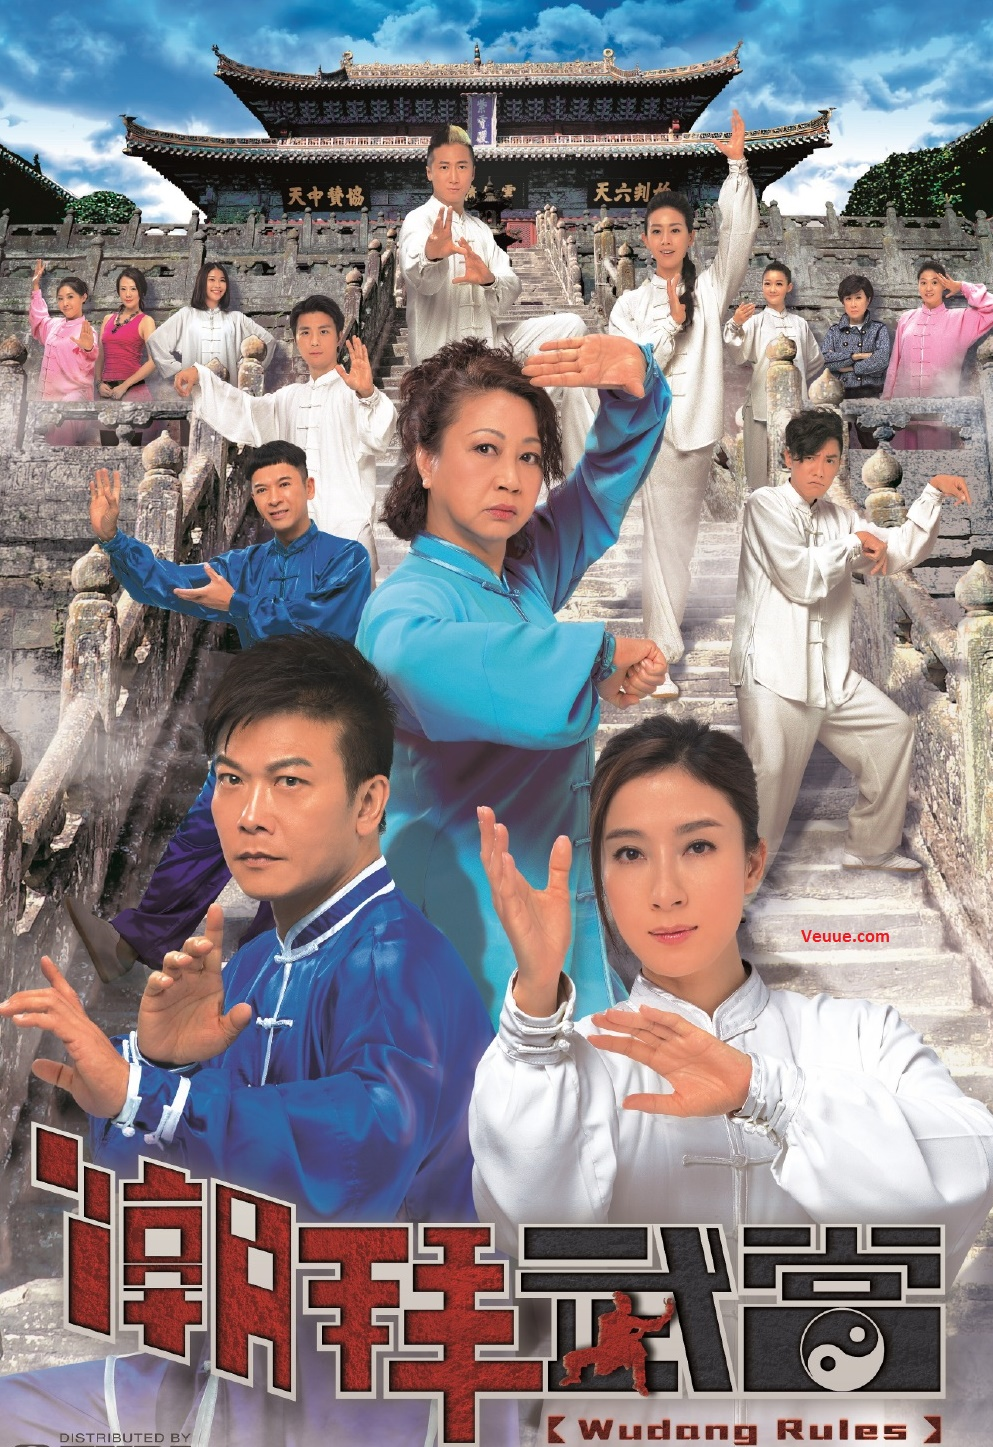 Wudang Rules – 潮拜武當 [20集 EPISODES]